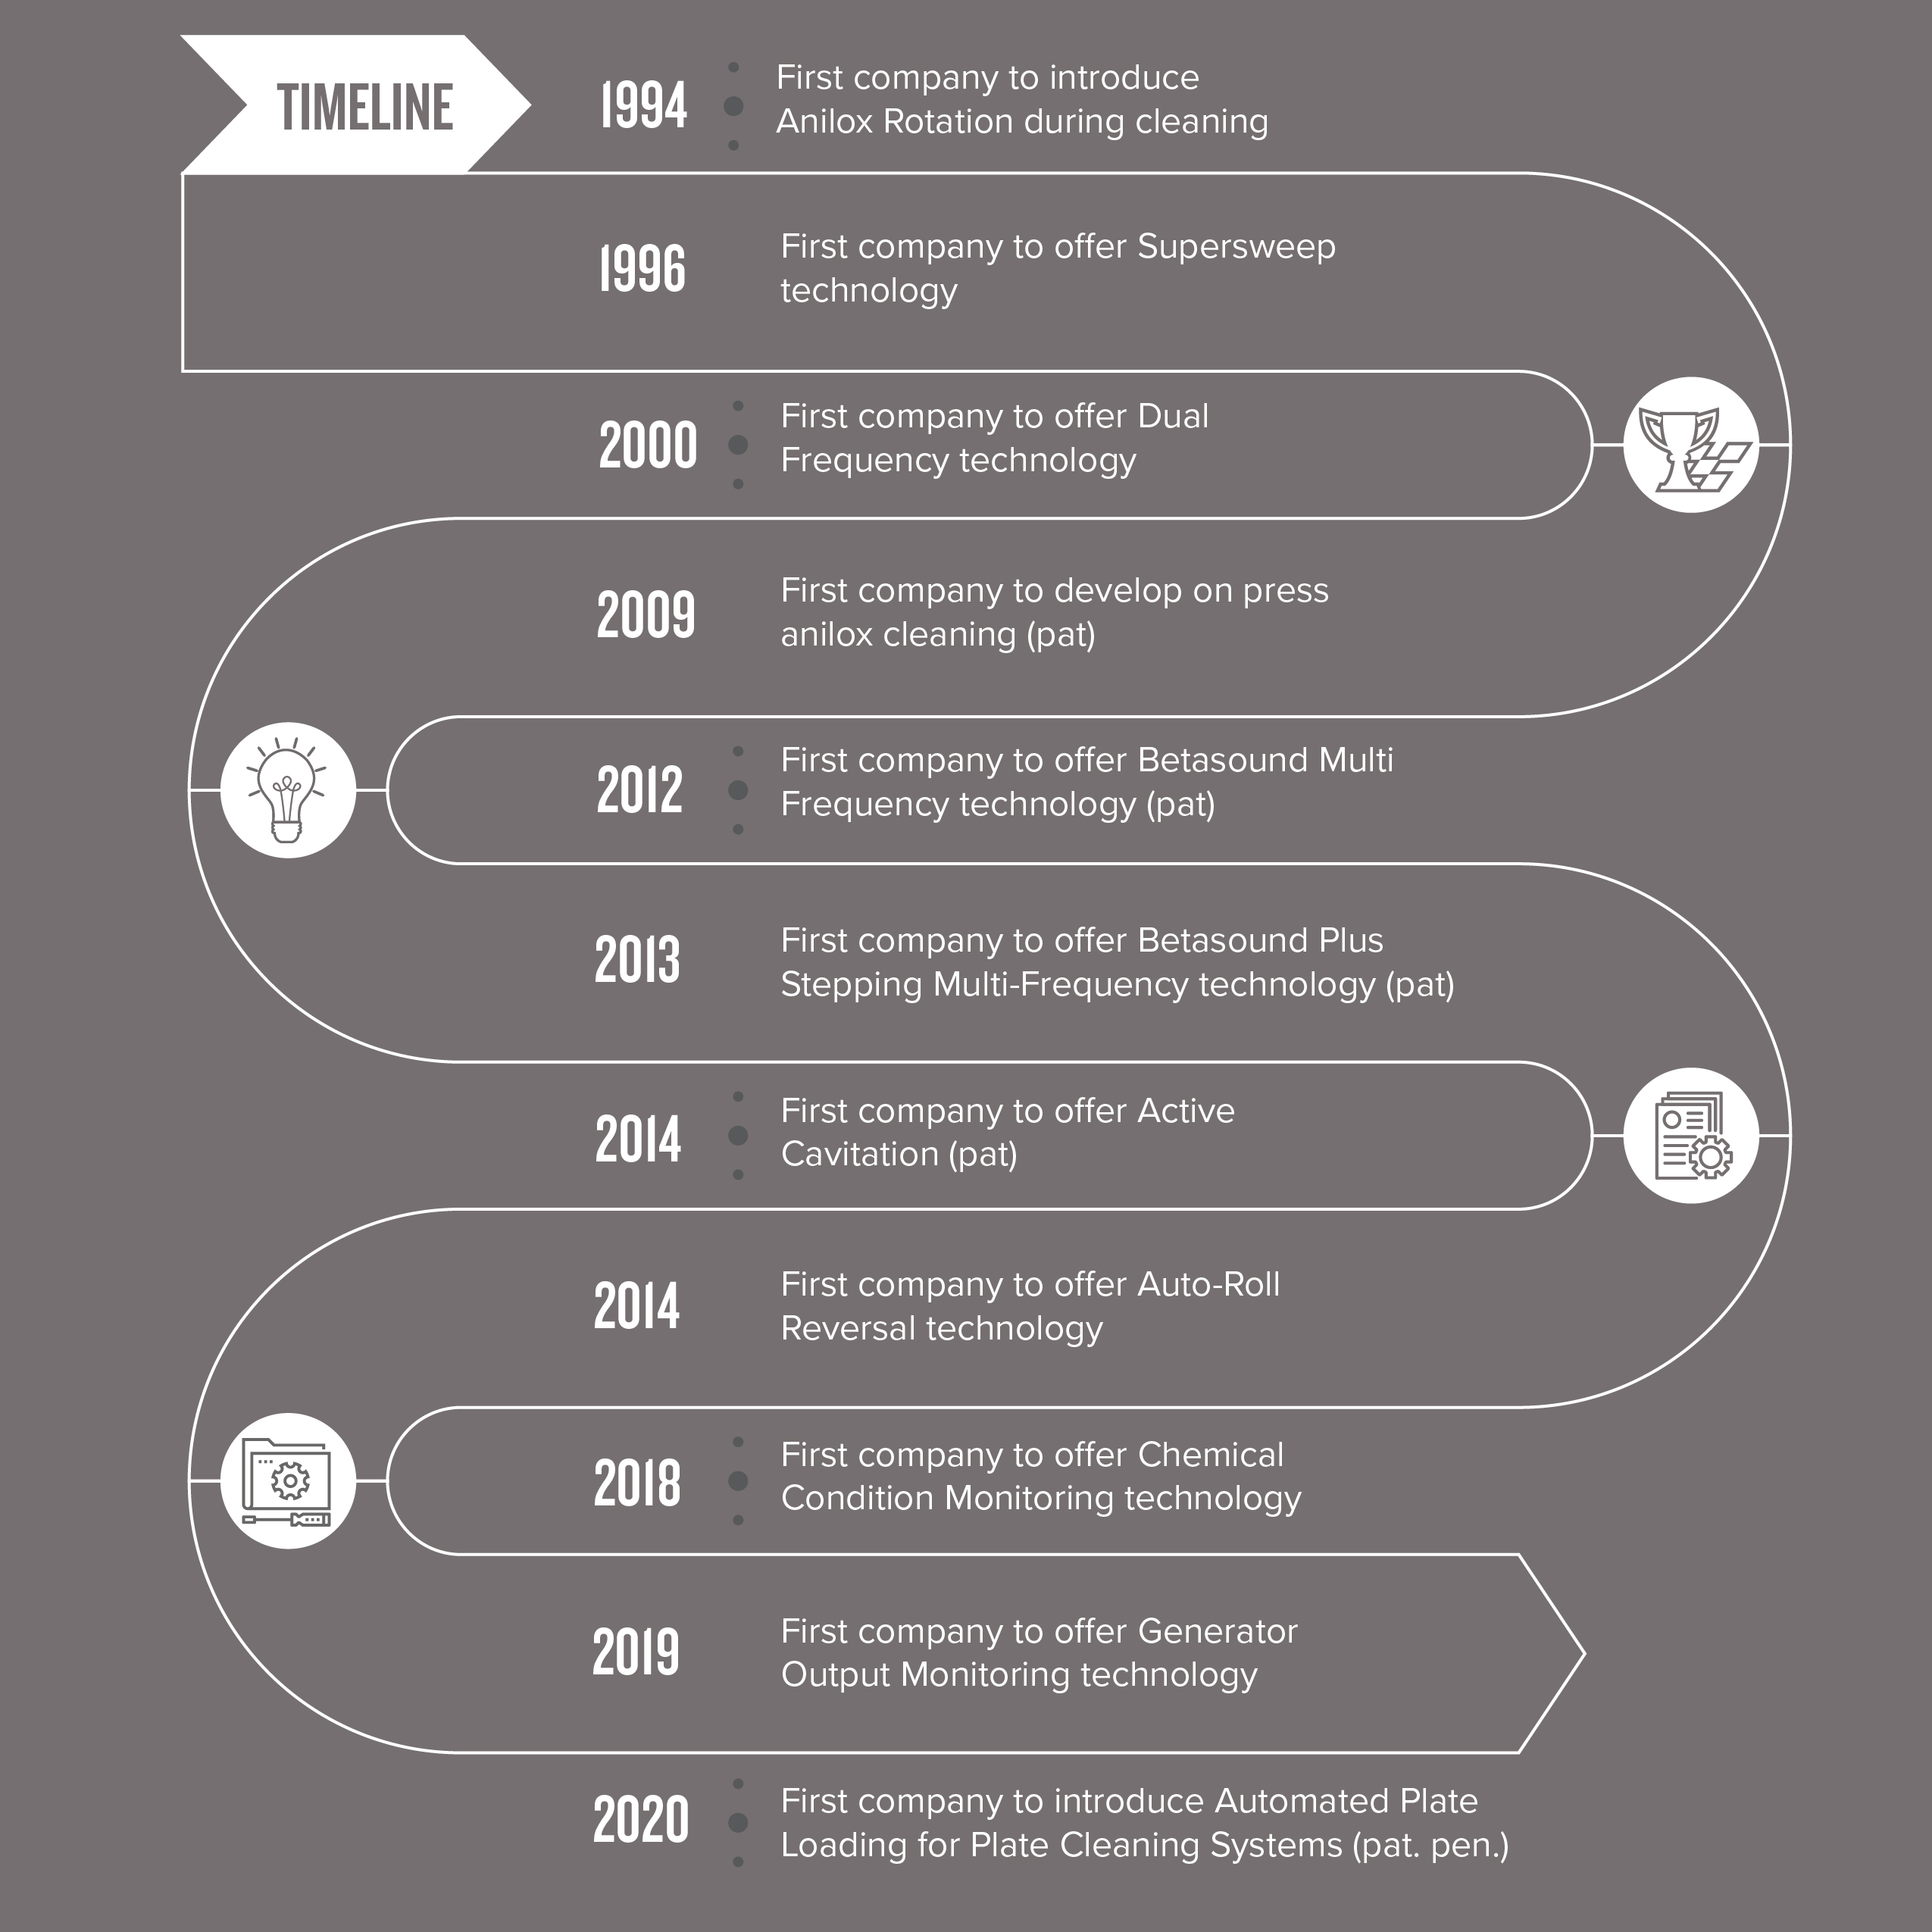 Alphasonics have had an active Research and Development team since 1993. This is our timeline of success.